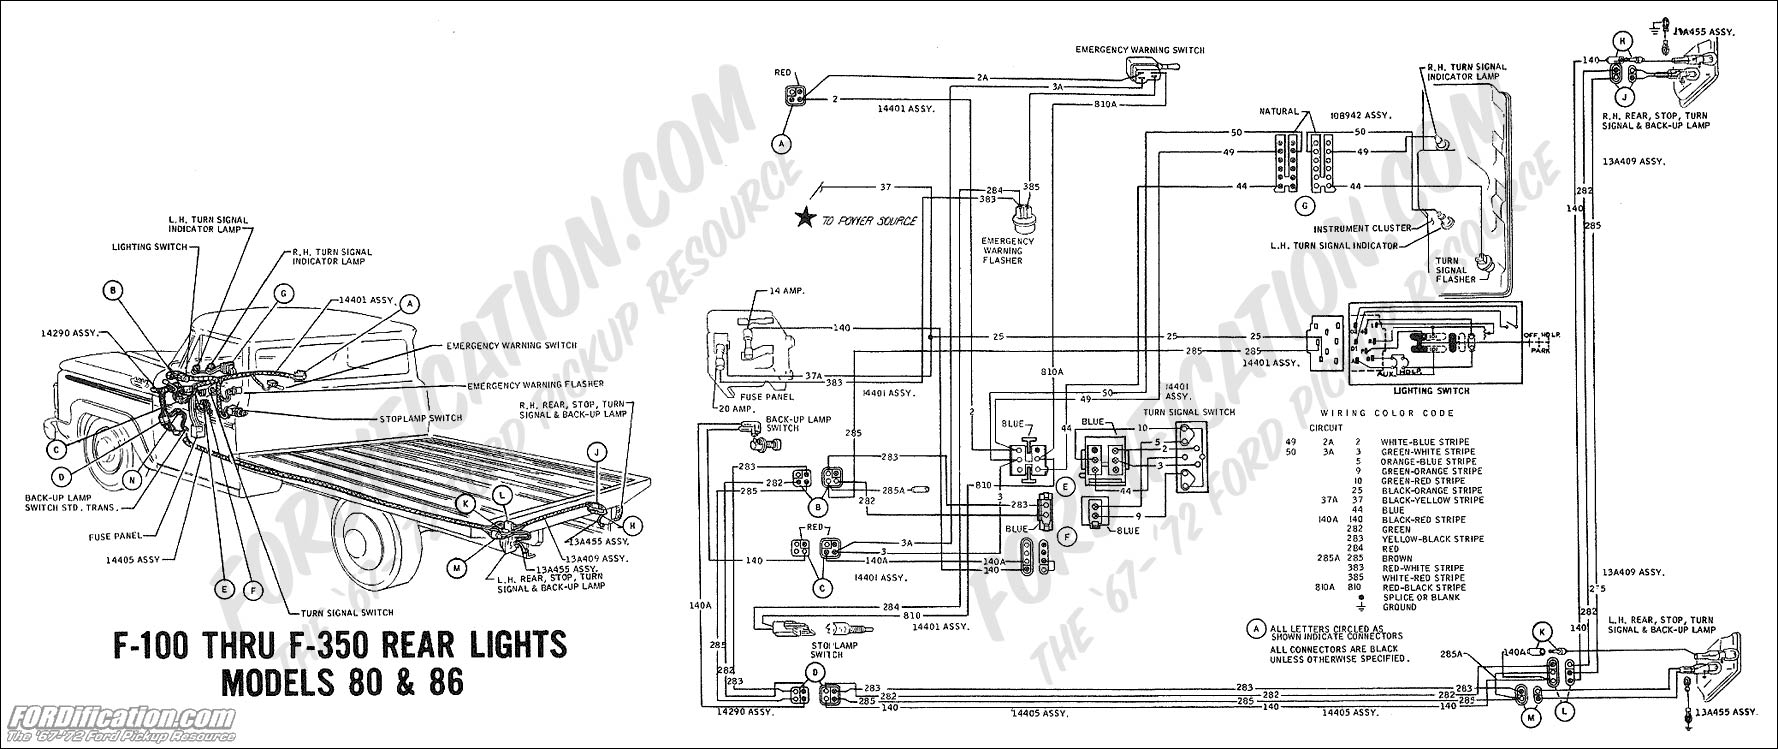 PadraoParaEngate together with RepairGuideContent in addition 1423797 93 F150 Mlp Sensor Wiring Diagram as well 344981 Wiring For Trailer Hitch also Schematics h. on trailer connector diagram